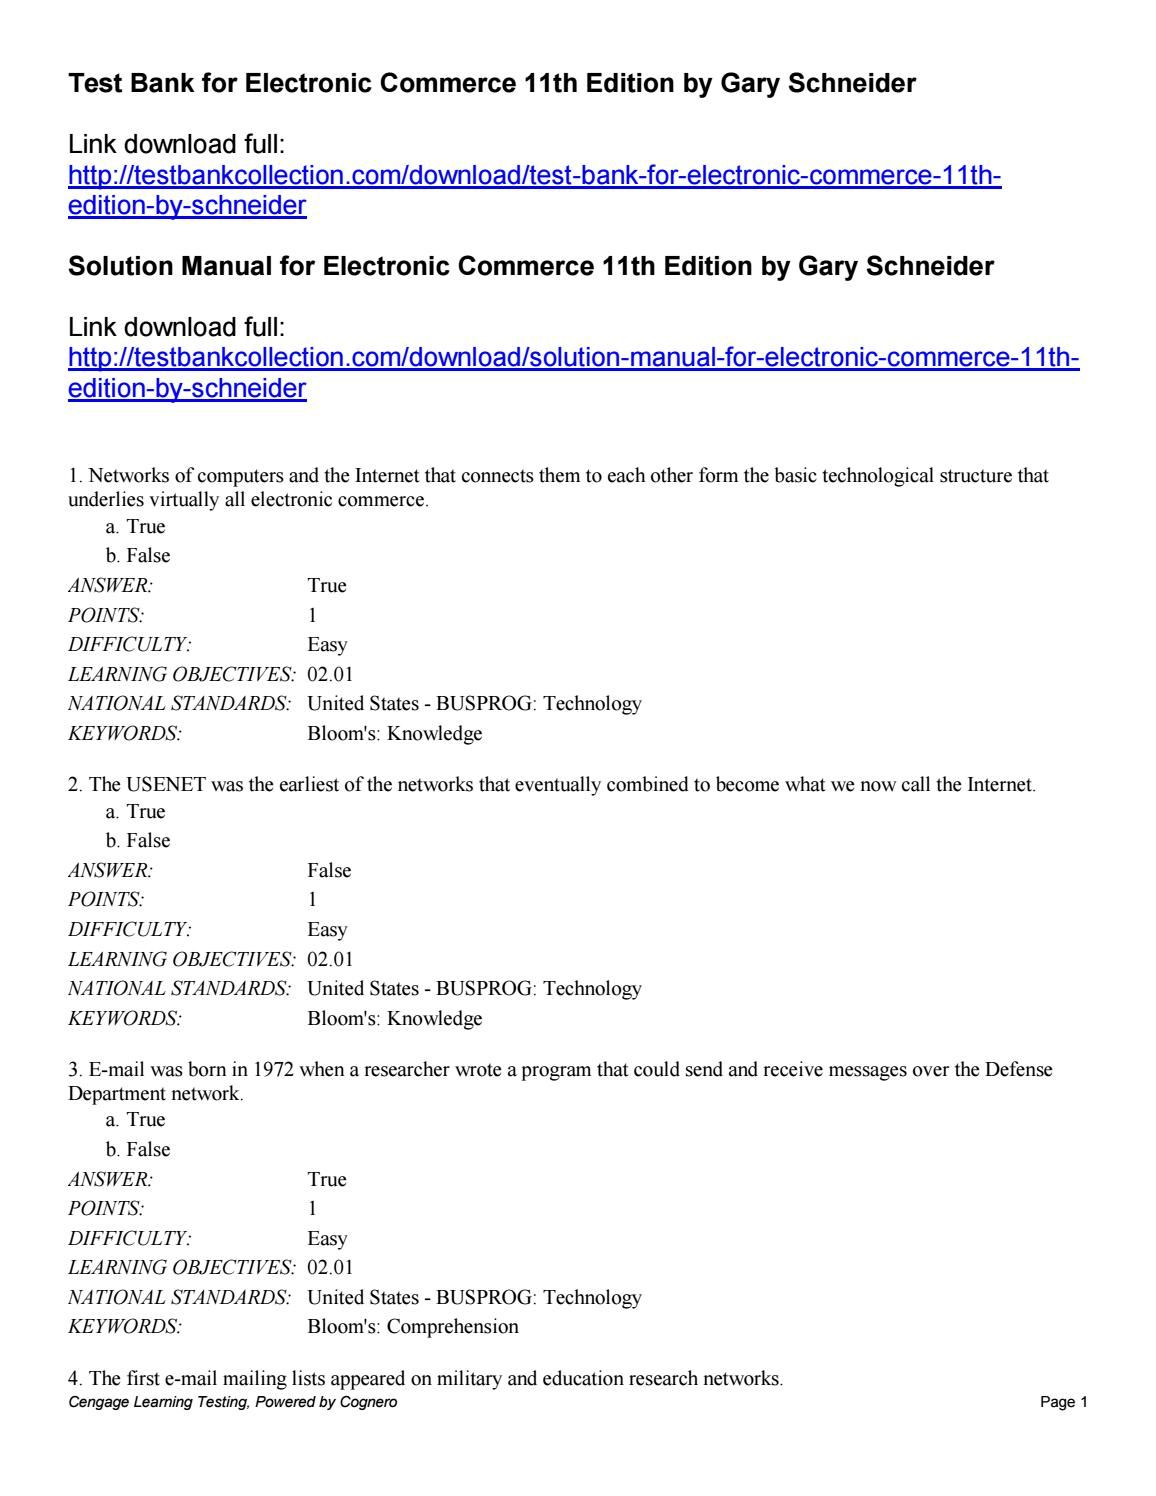 Test bank for electronic commerce 11th edition by gary schneider Website,  Electronics, Consumer Electronics